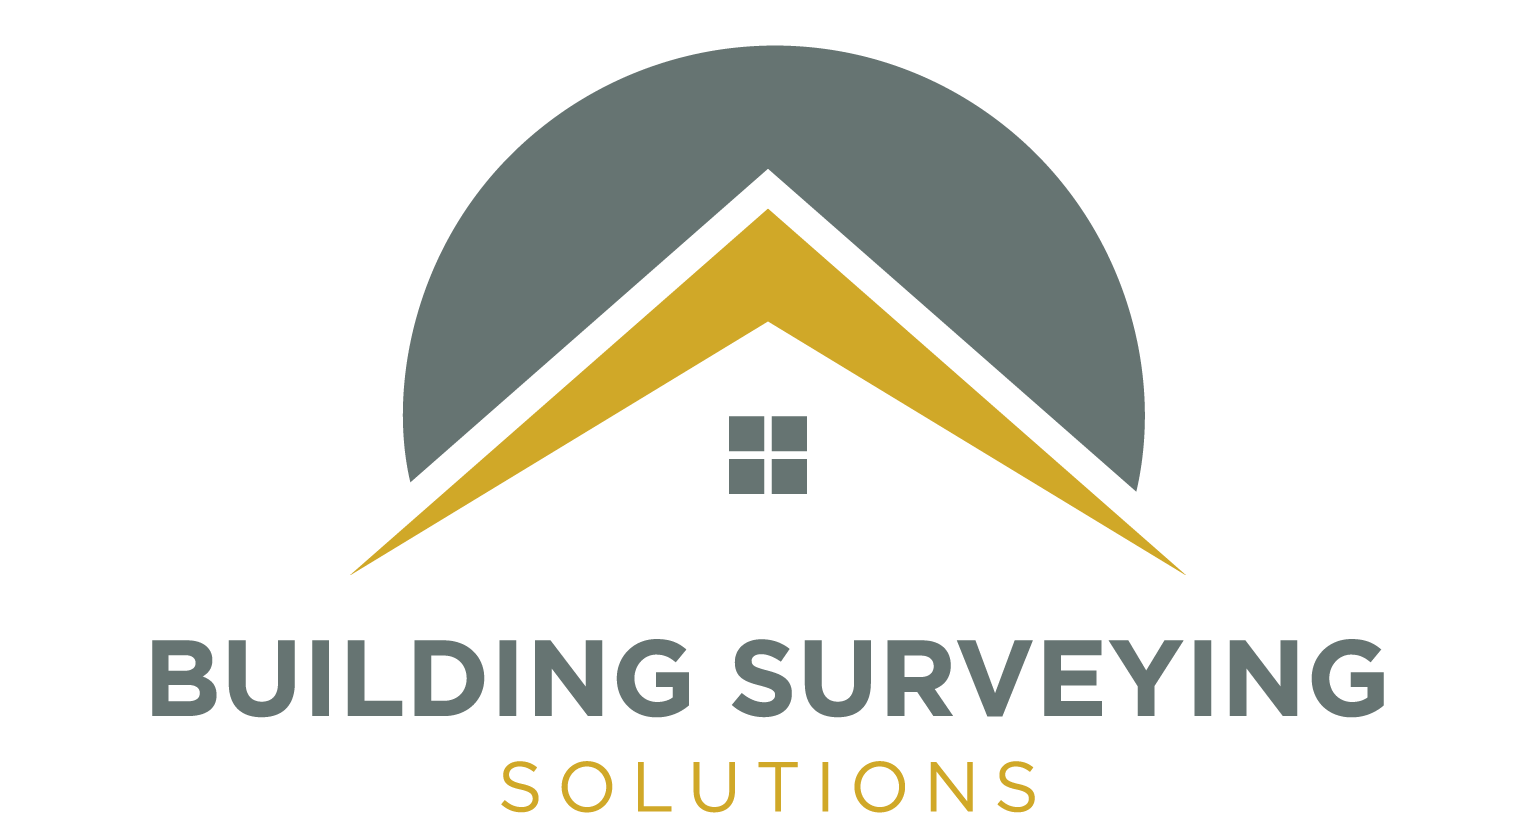 Building Surveying Solutions